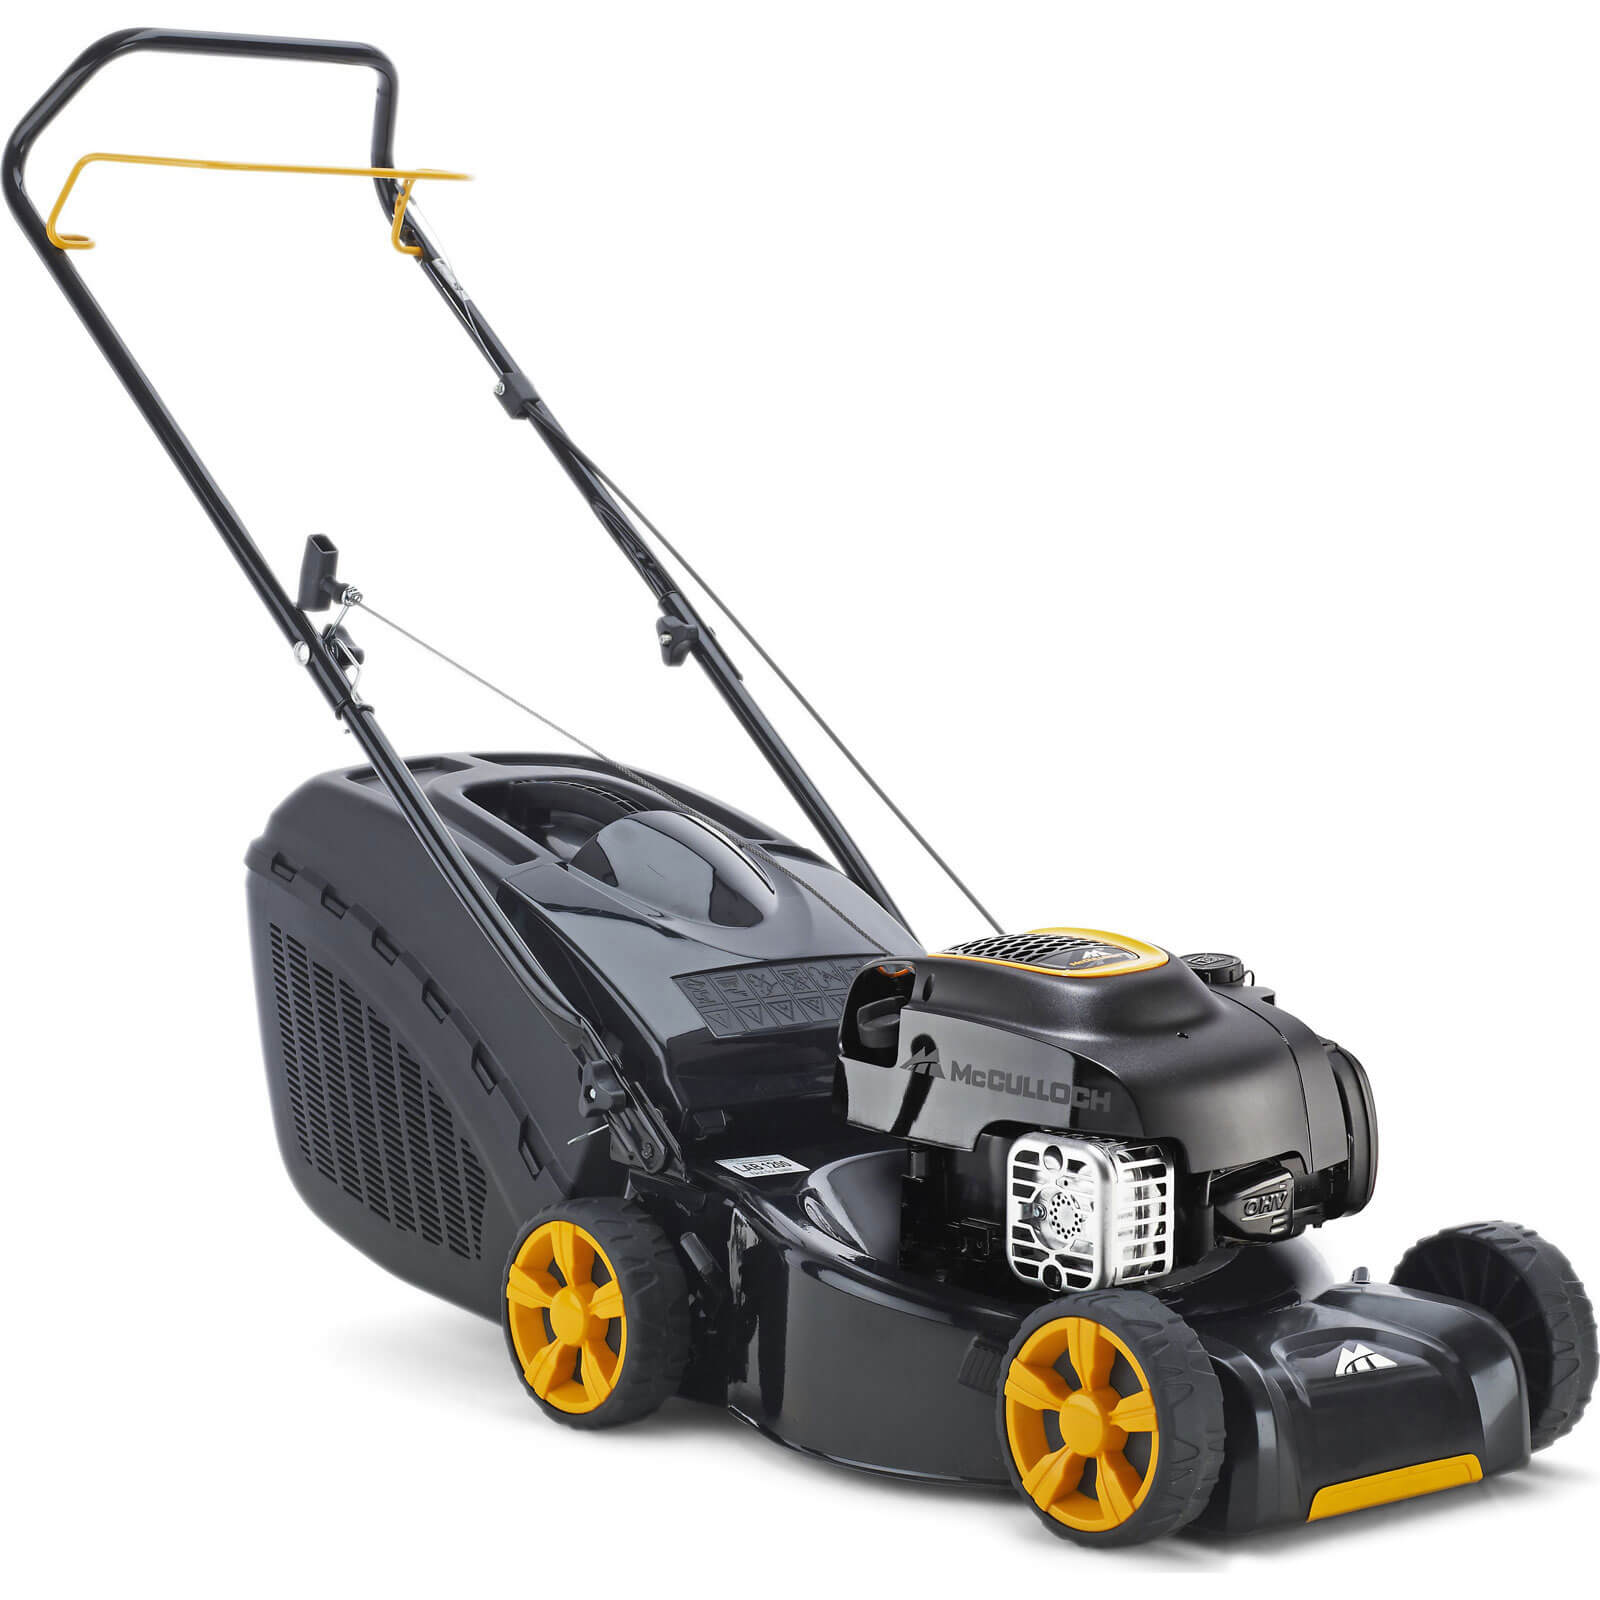 McCulloch M40-125 Push Petrol Rotary Lawn Mower 400mm Cut Width with Steel Deck & Briggs & Stratton 450E 125cc Engine